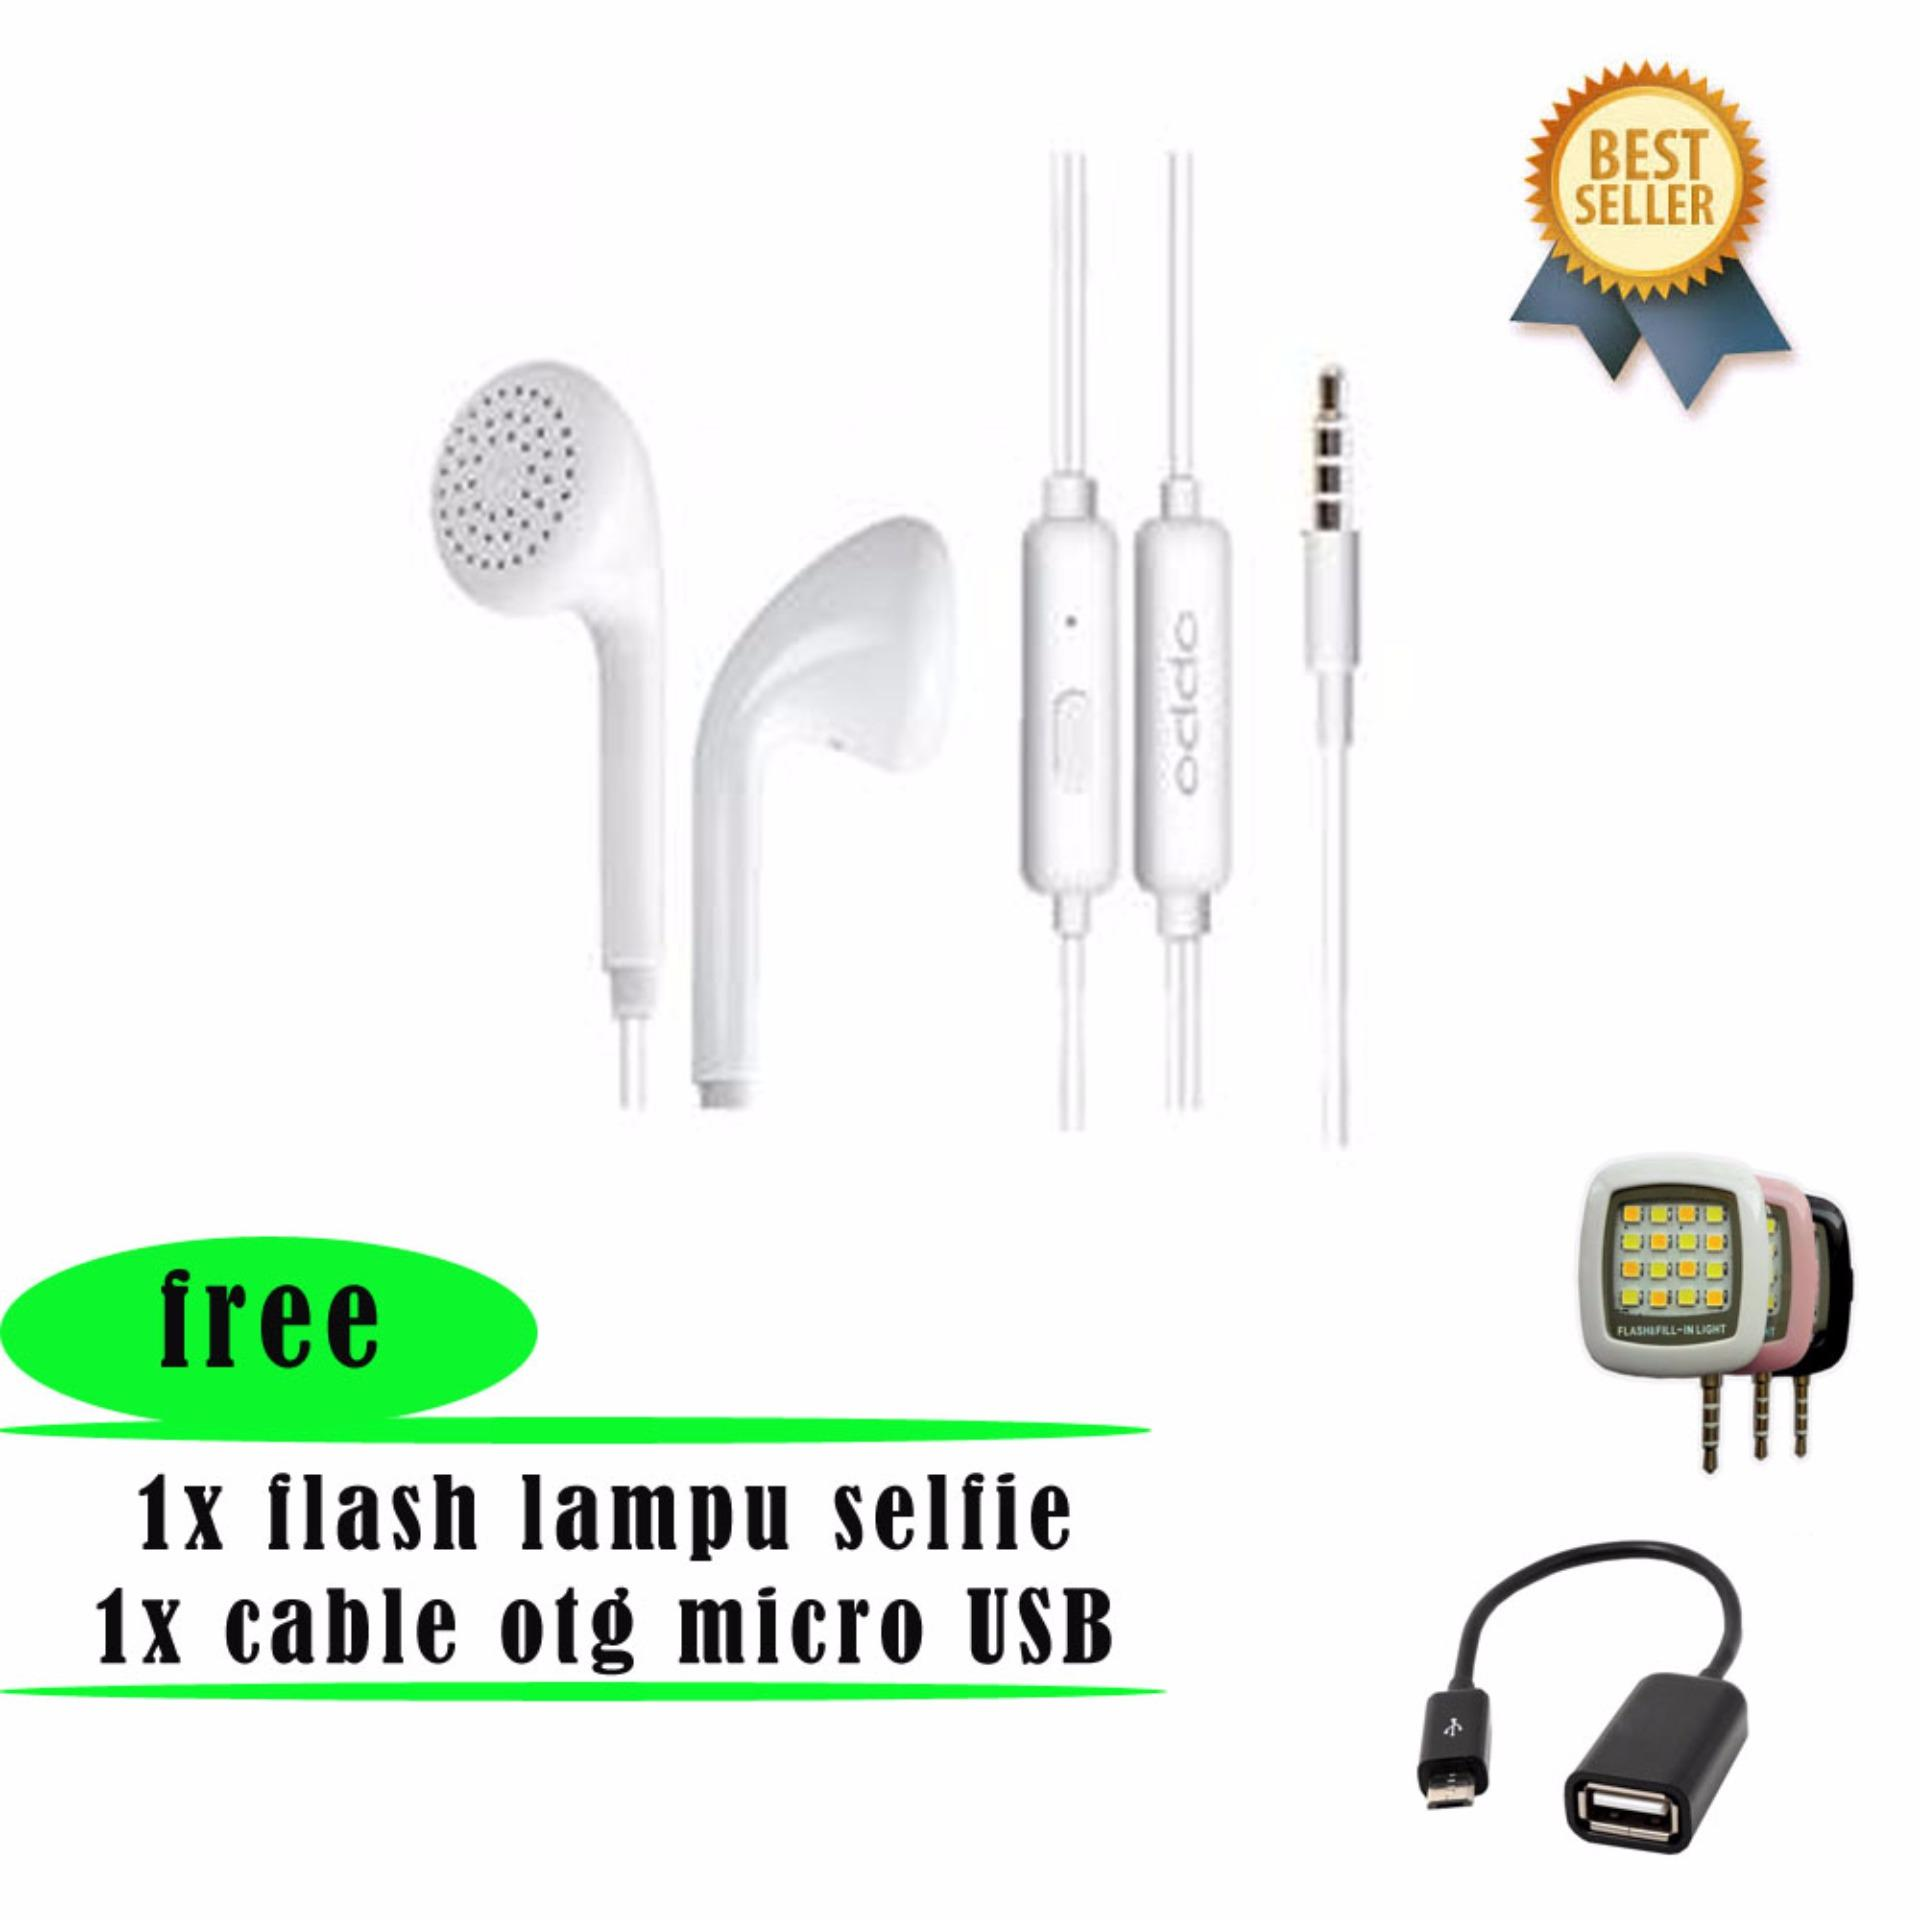 Oppo Mh133 Handsfree Original In Ear Earphone 3 5mm Putih Cek Headset F1 Plus F1s New A39 A37 Neo 7 Terjamin Nyaman Di Telinganbsp Stereo Portable Headphone